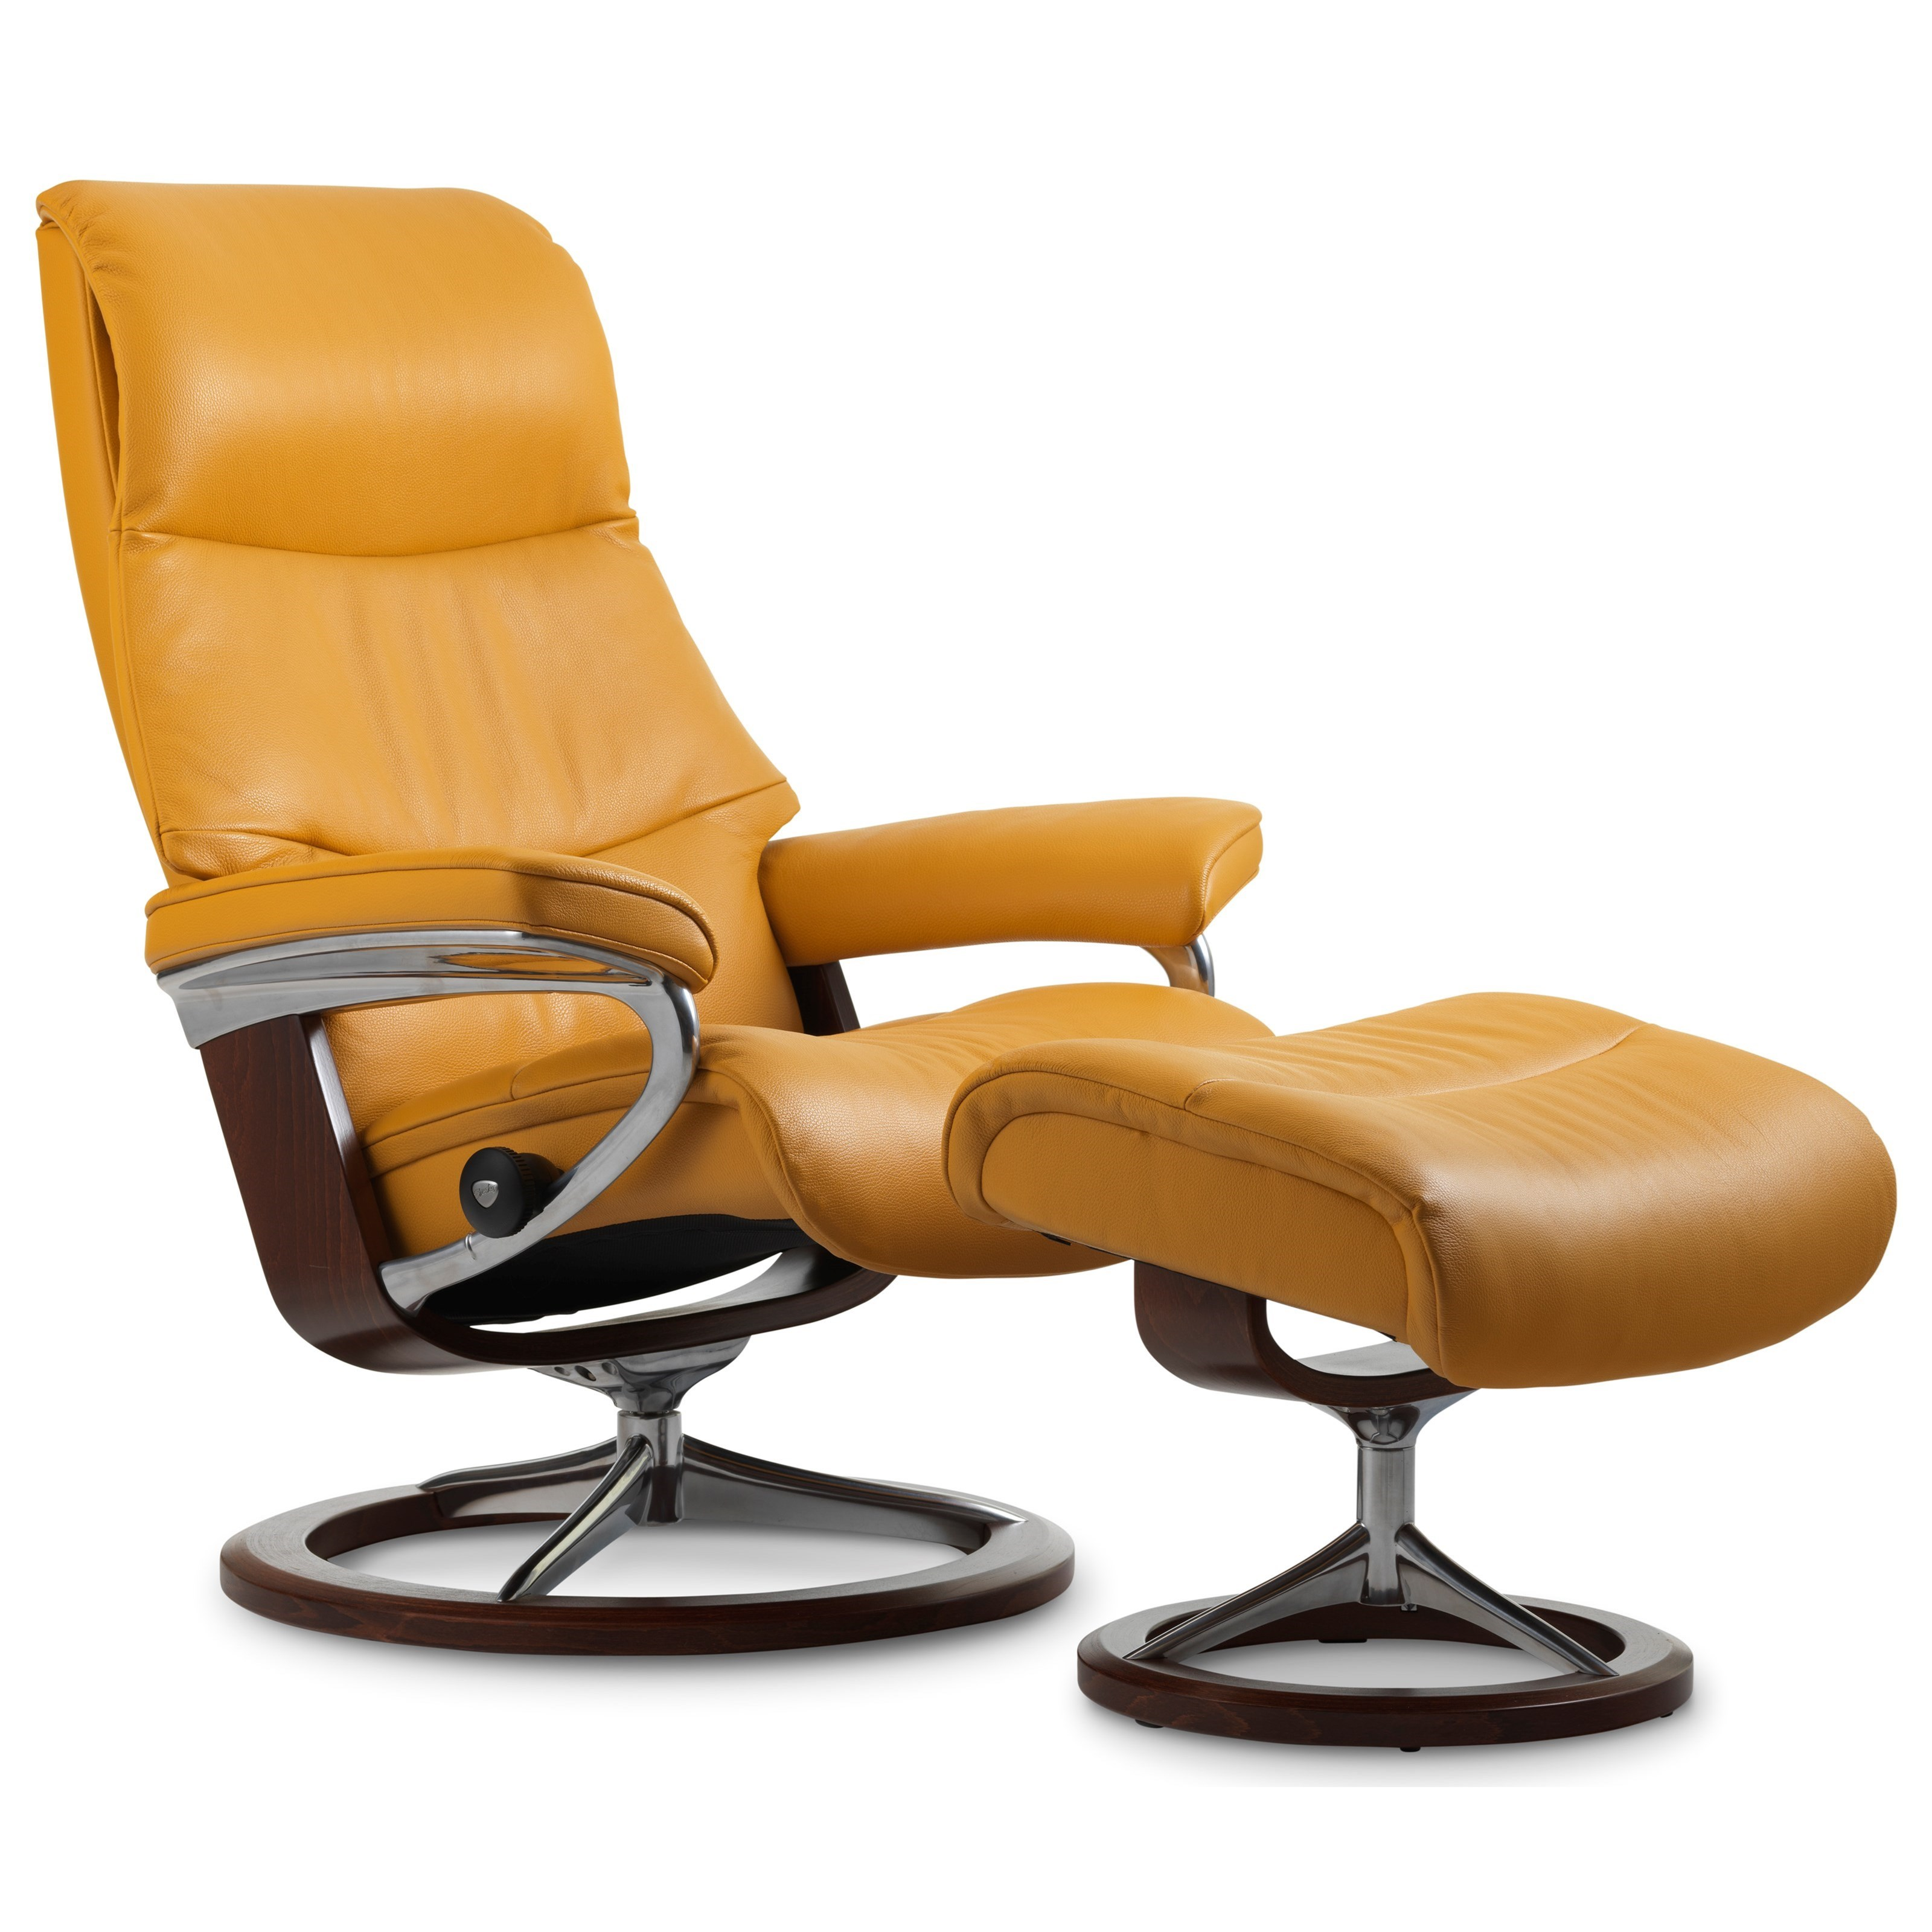 View Medium Chair & Ottoman with Signature Base by Stressless at Gill Brothers Furniture